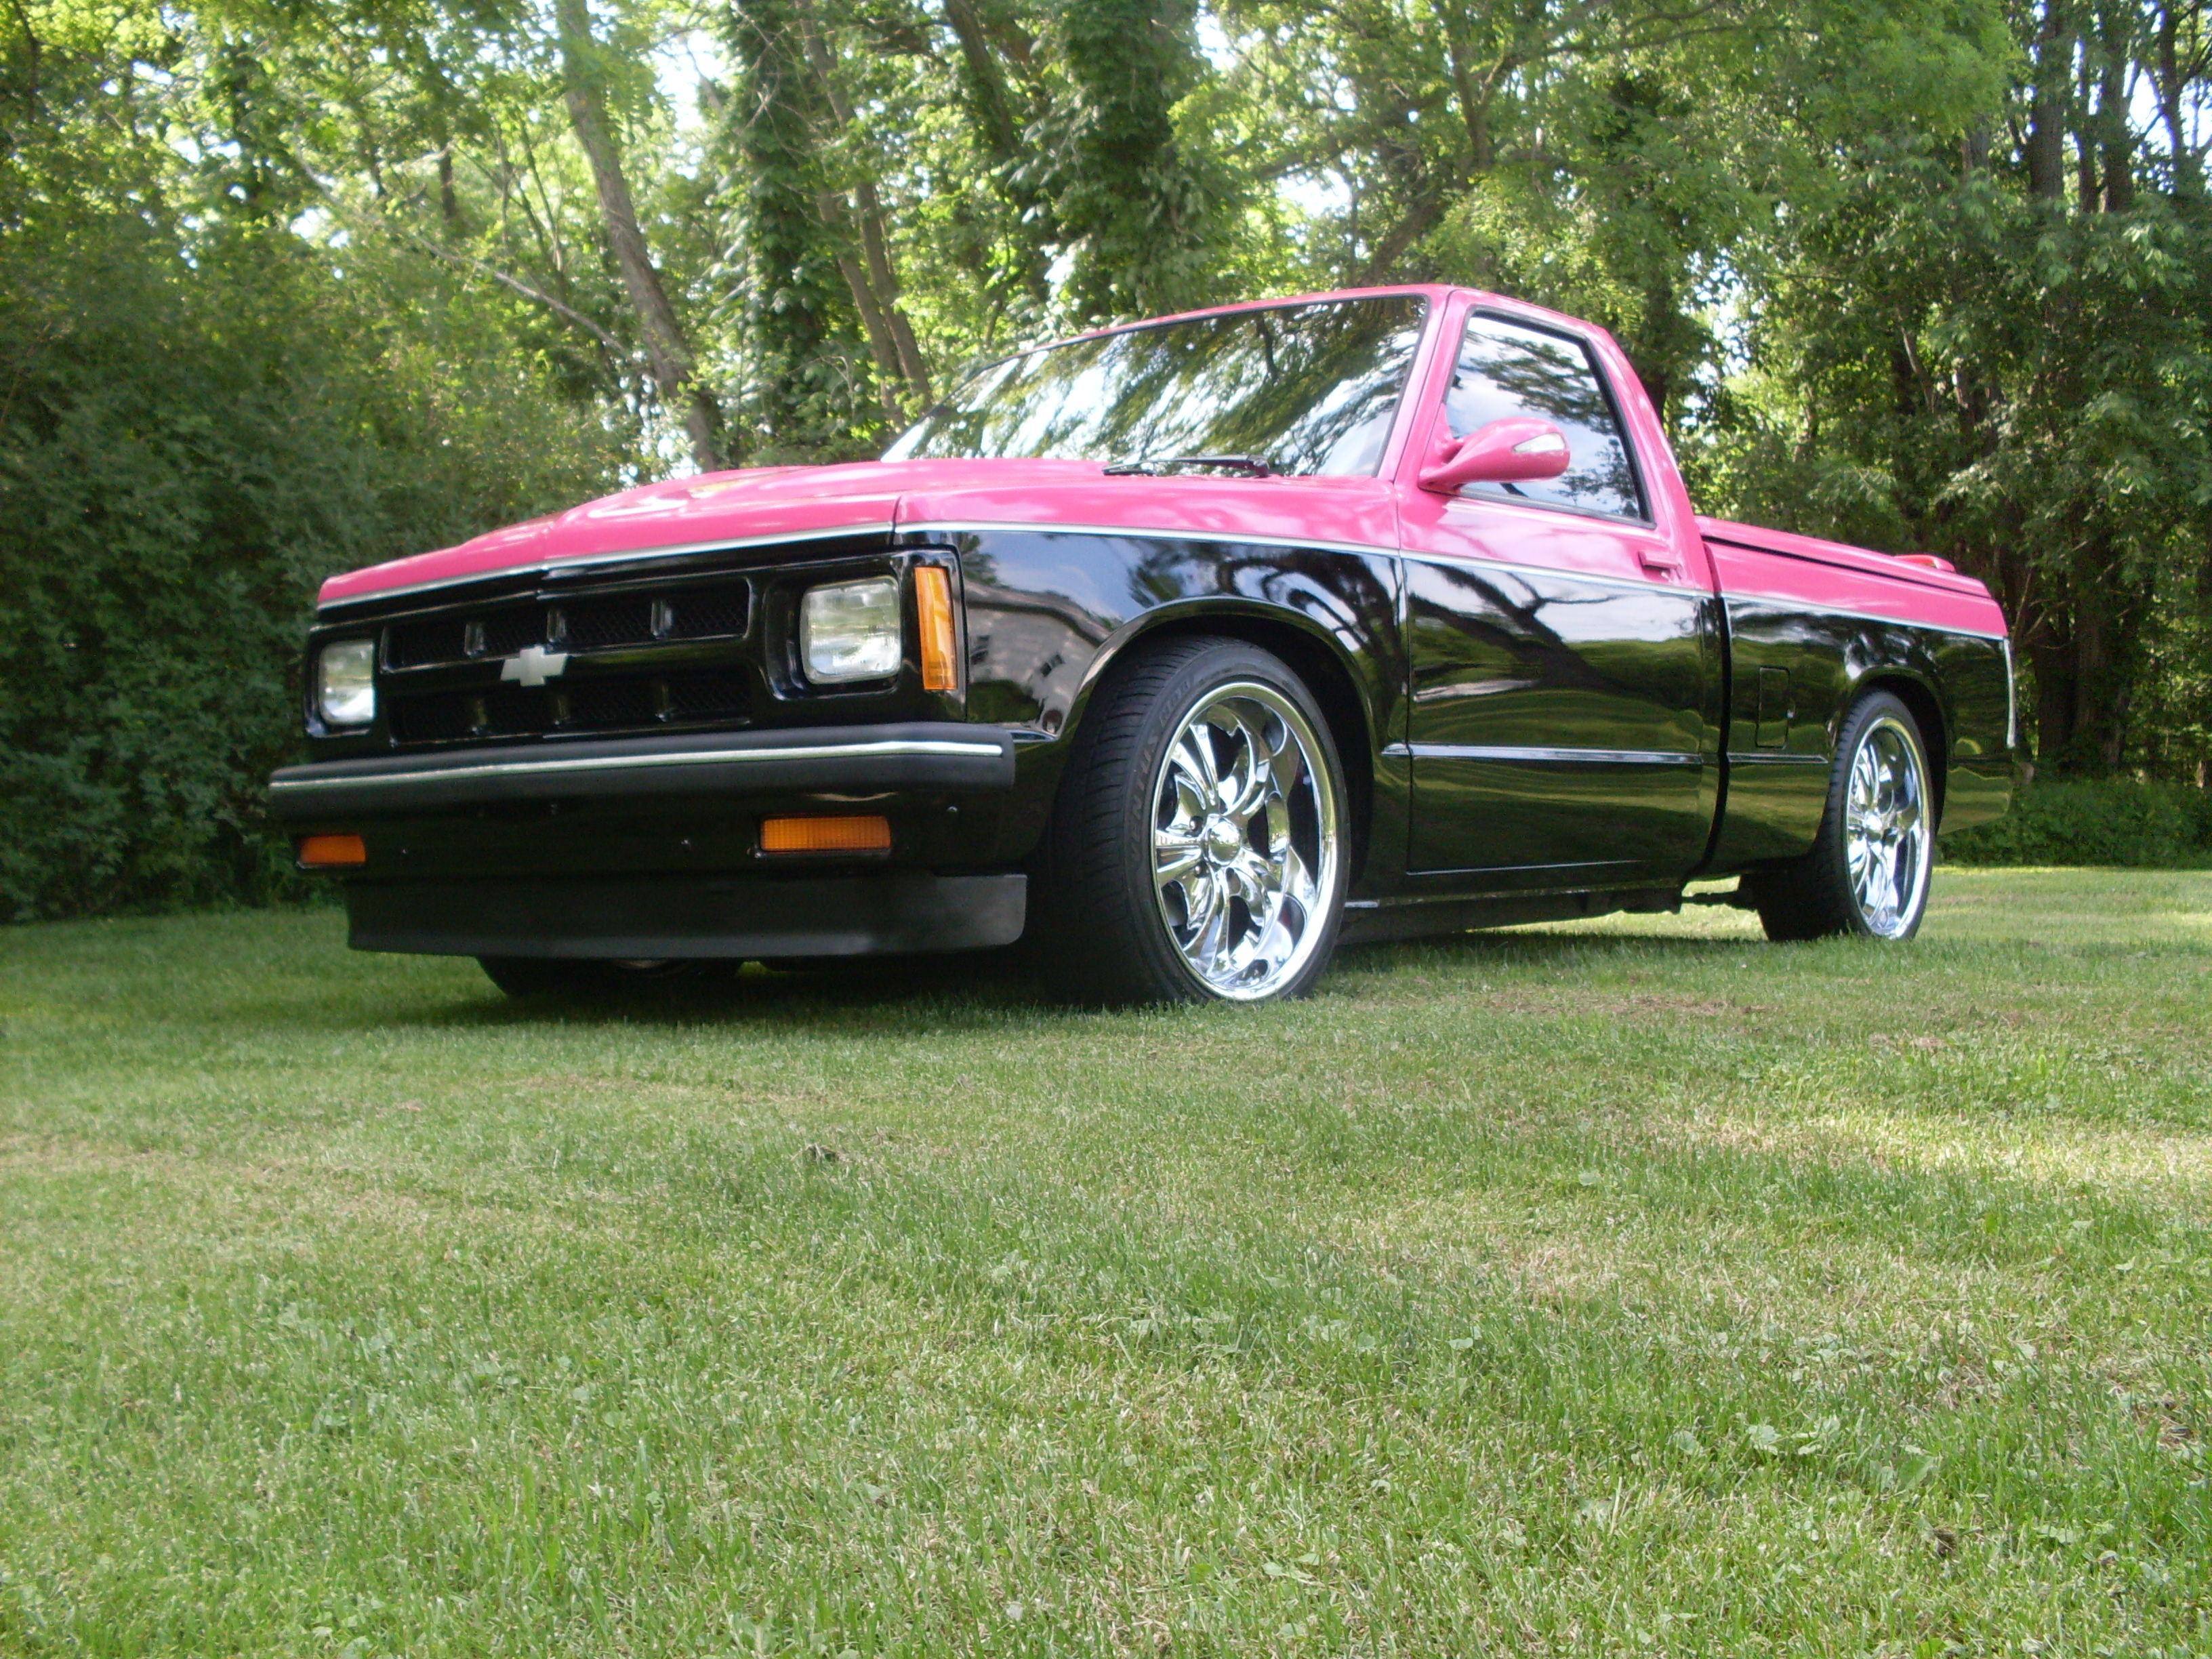 dakotadiann 1993 chevrolet s10 regular cab specs photos modification info at cardomain. Black Bedroom Furniture Sets. Home Design Ideas